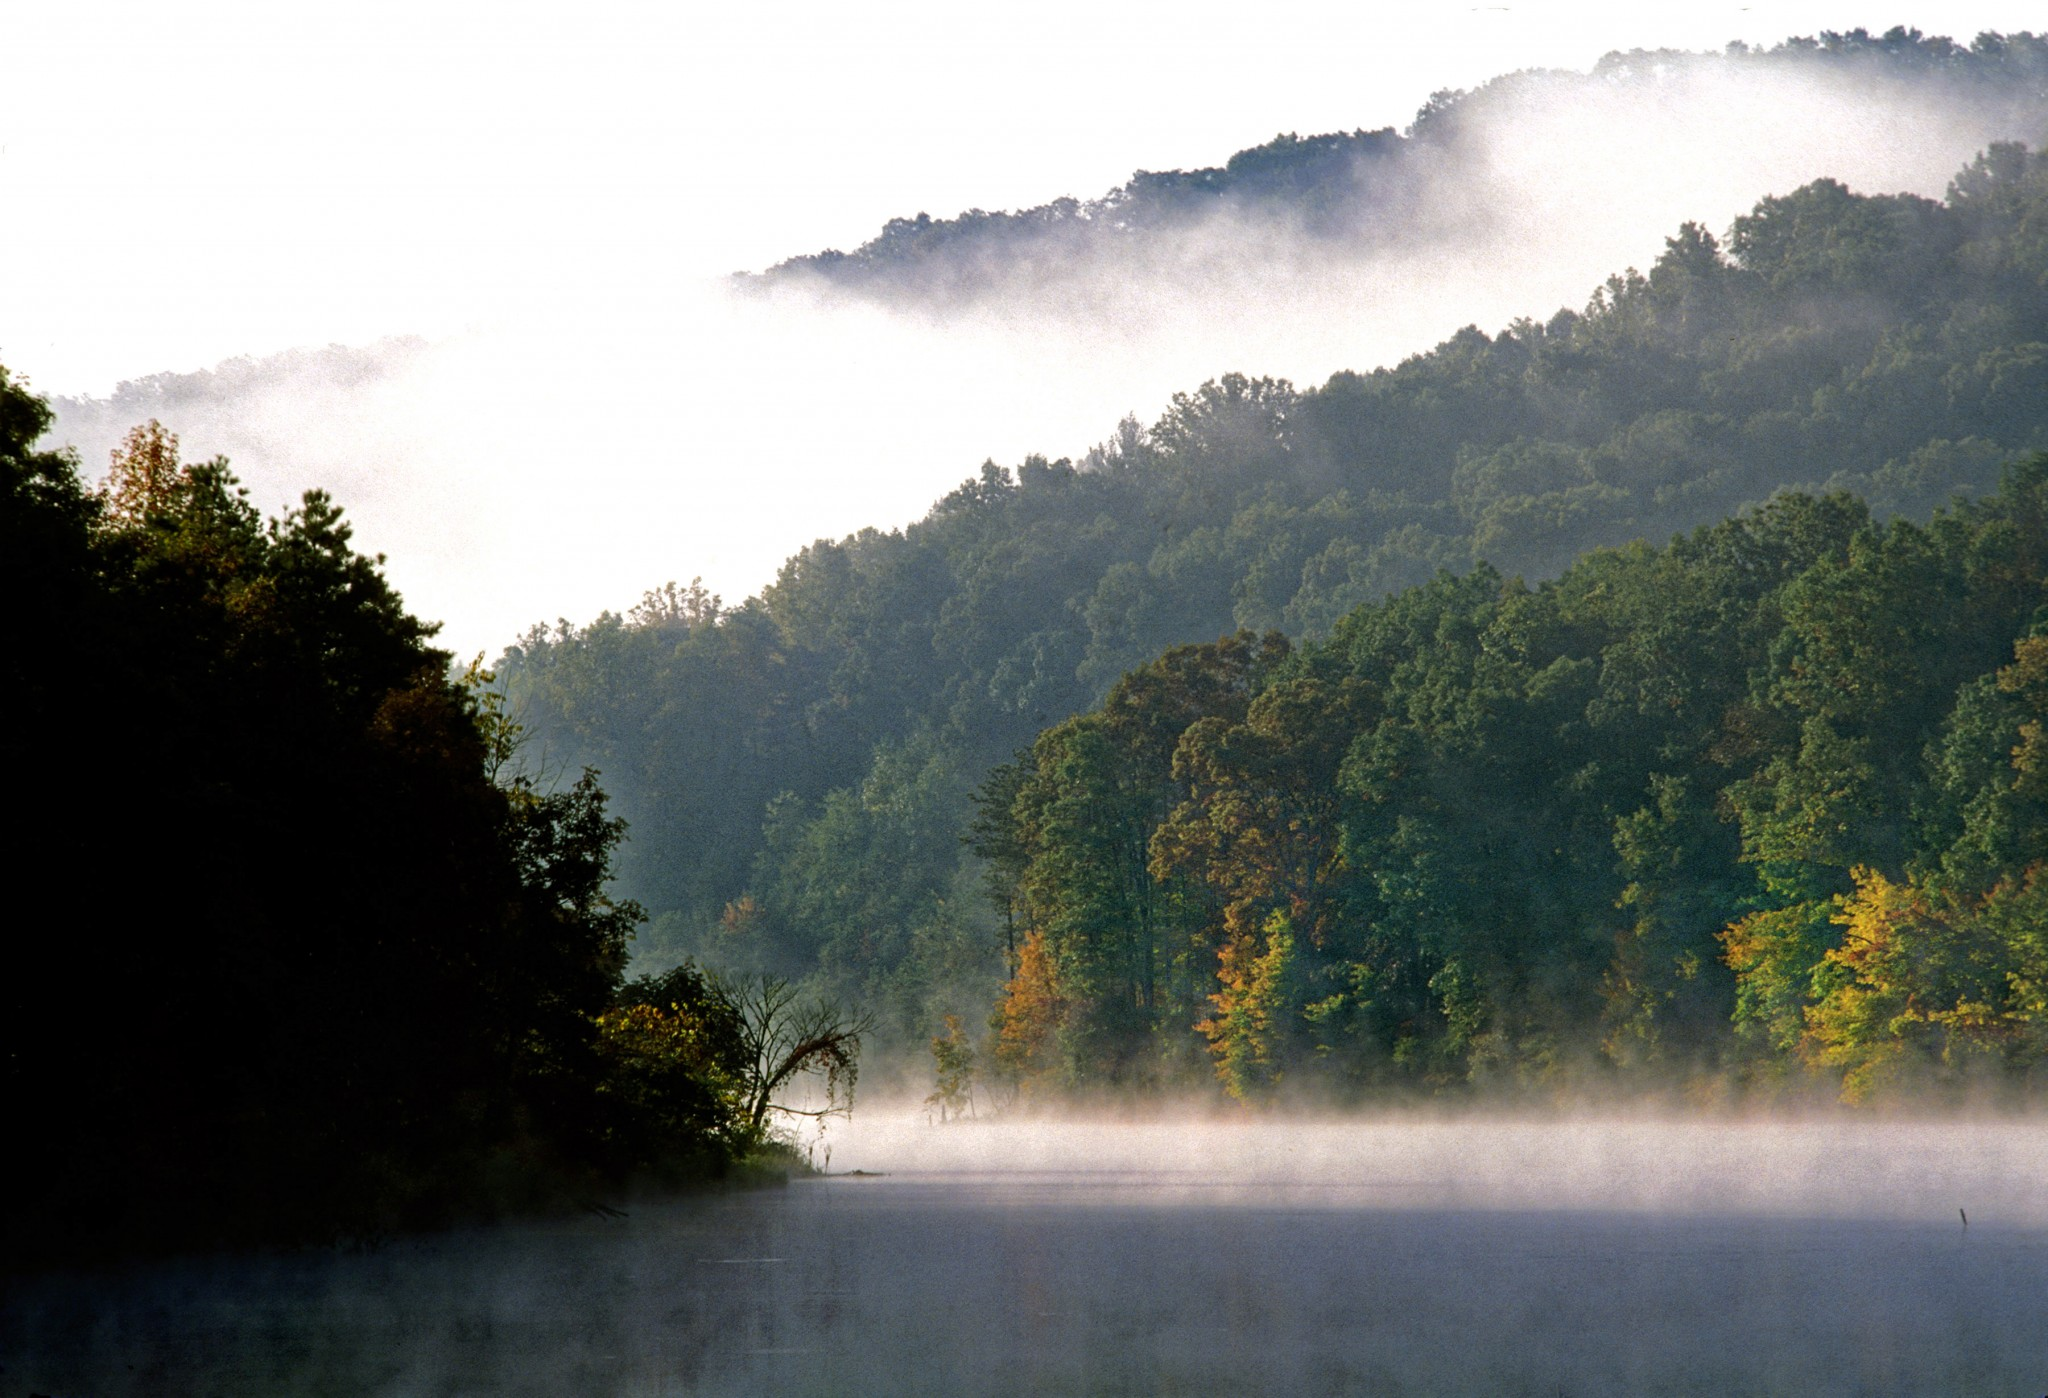 Fog lays between the ridges that slope into Turkeyfoot Lake, located below the Shawnee Lodge. The region is nicknamed the Little Smokies because, like the Smokies, there is often moisture hanging in the air above the tens of thousands of acres of deciduous forest. (Photo by Art Weber)